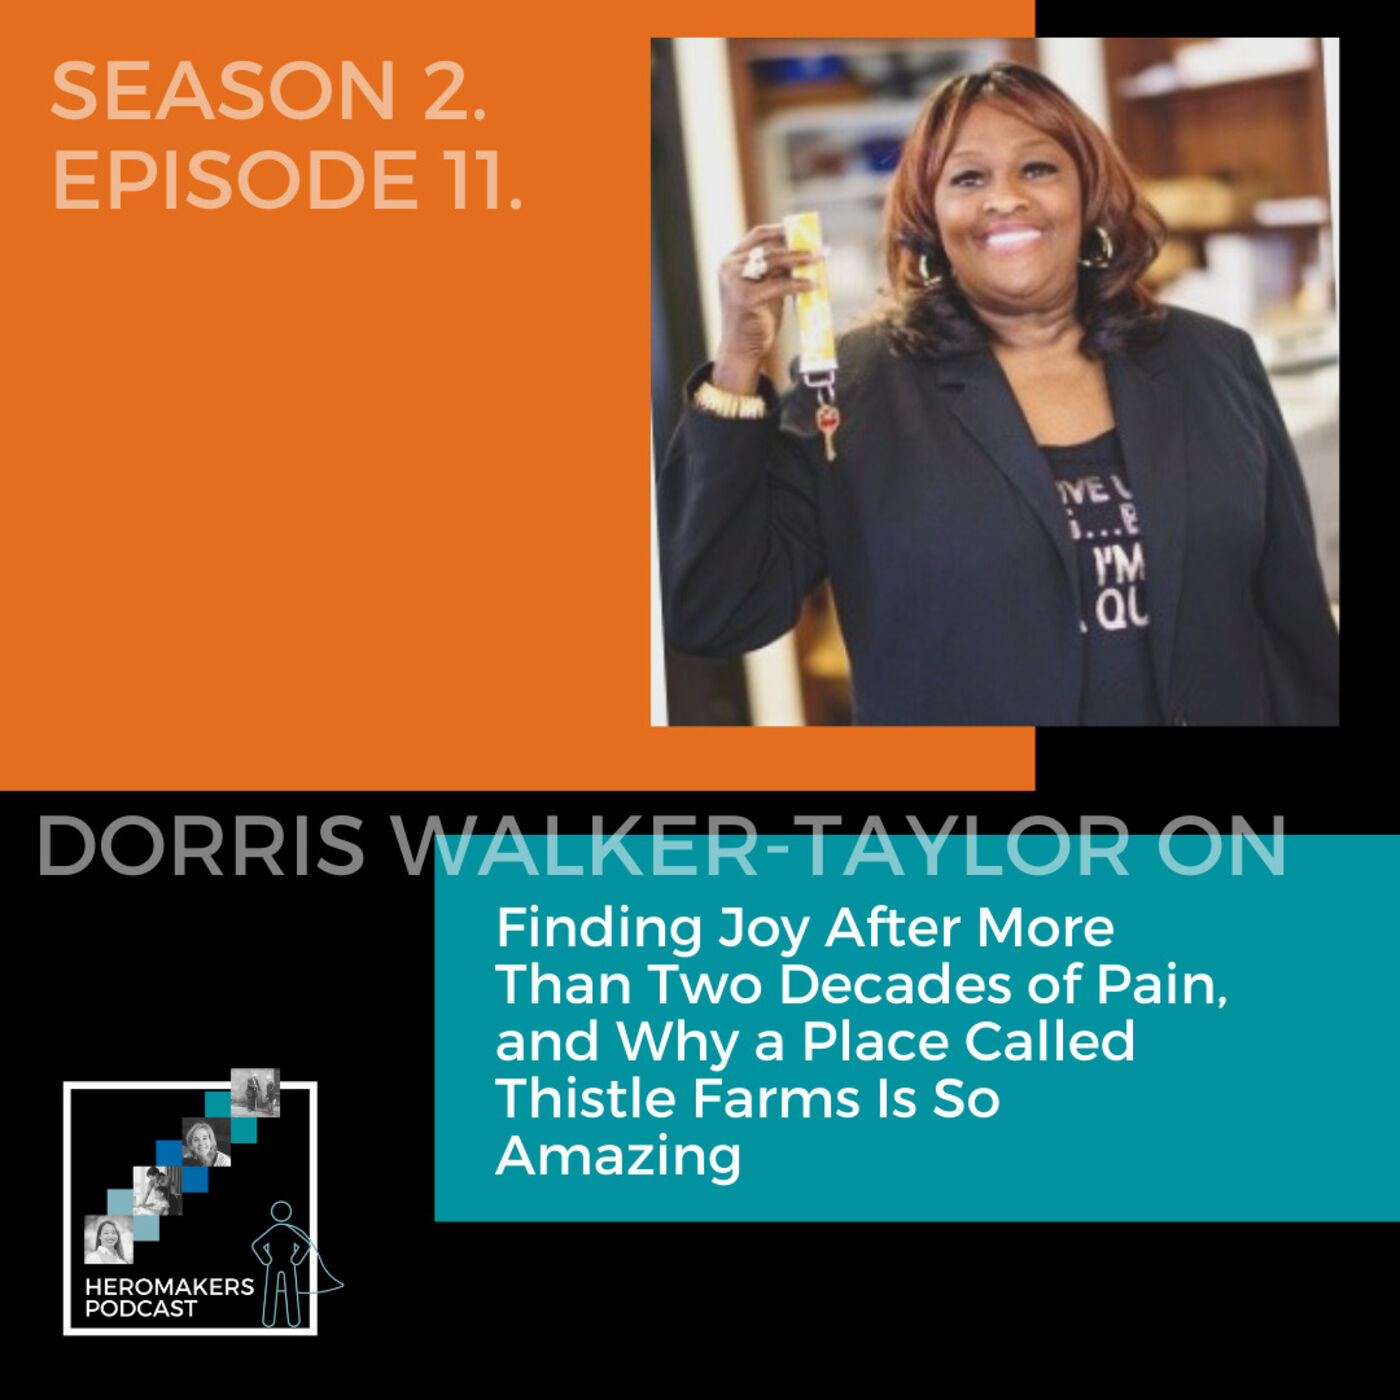 Dorris Walker-Taylor on Finding Joy After More Than Two Decades of Pain, and Why a Place Called Thistle Farms Is So Amazing